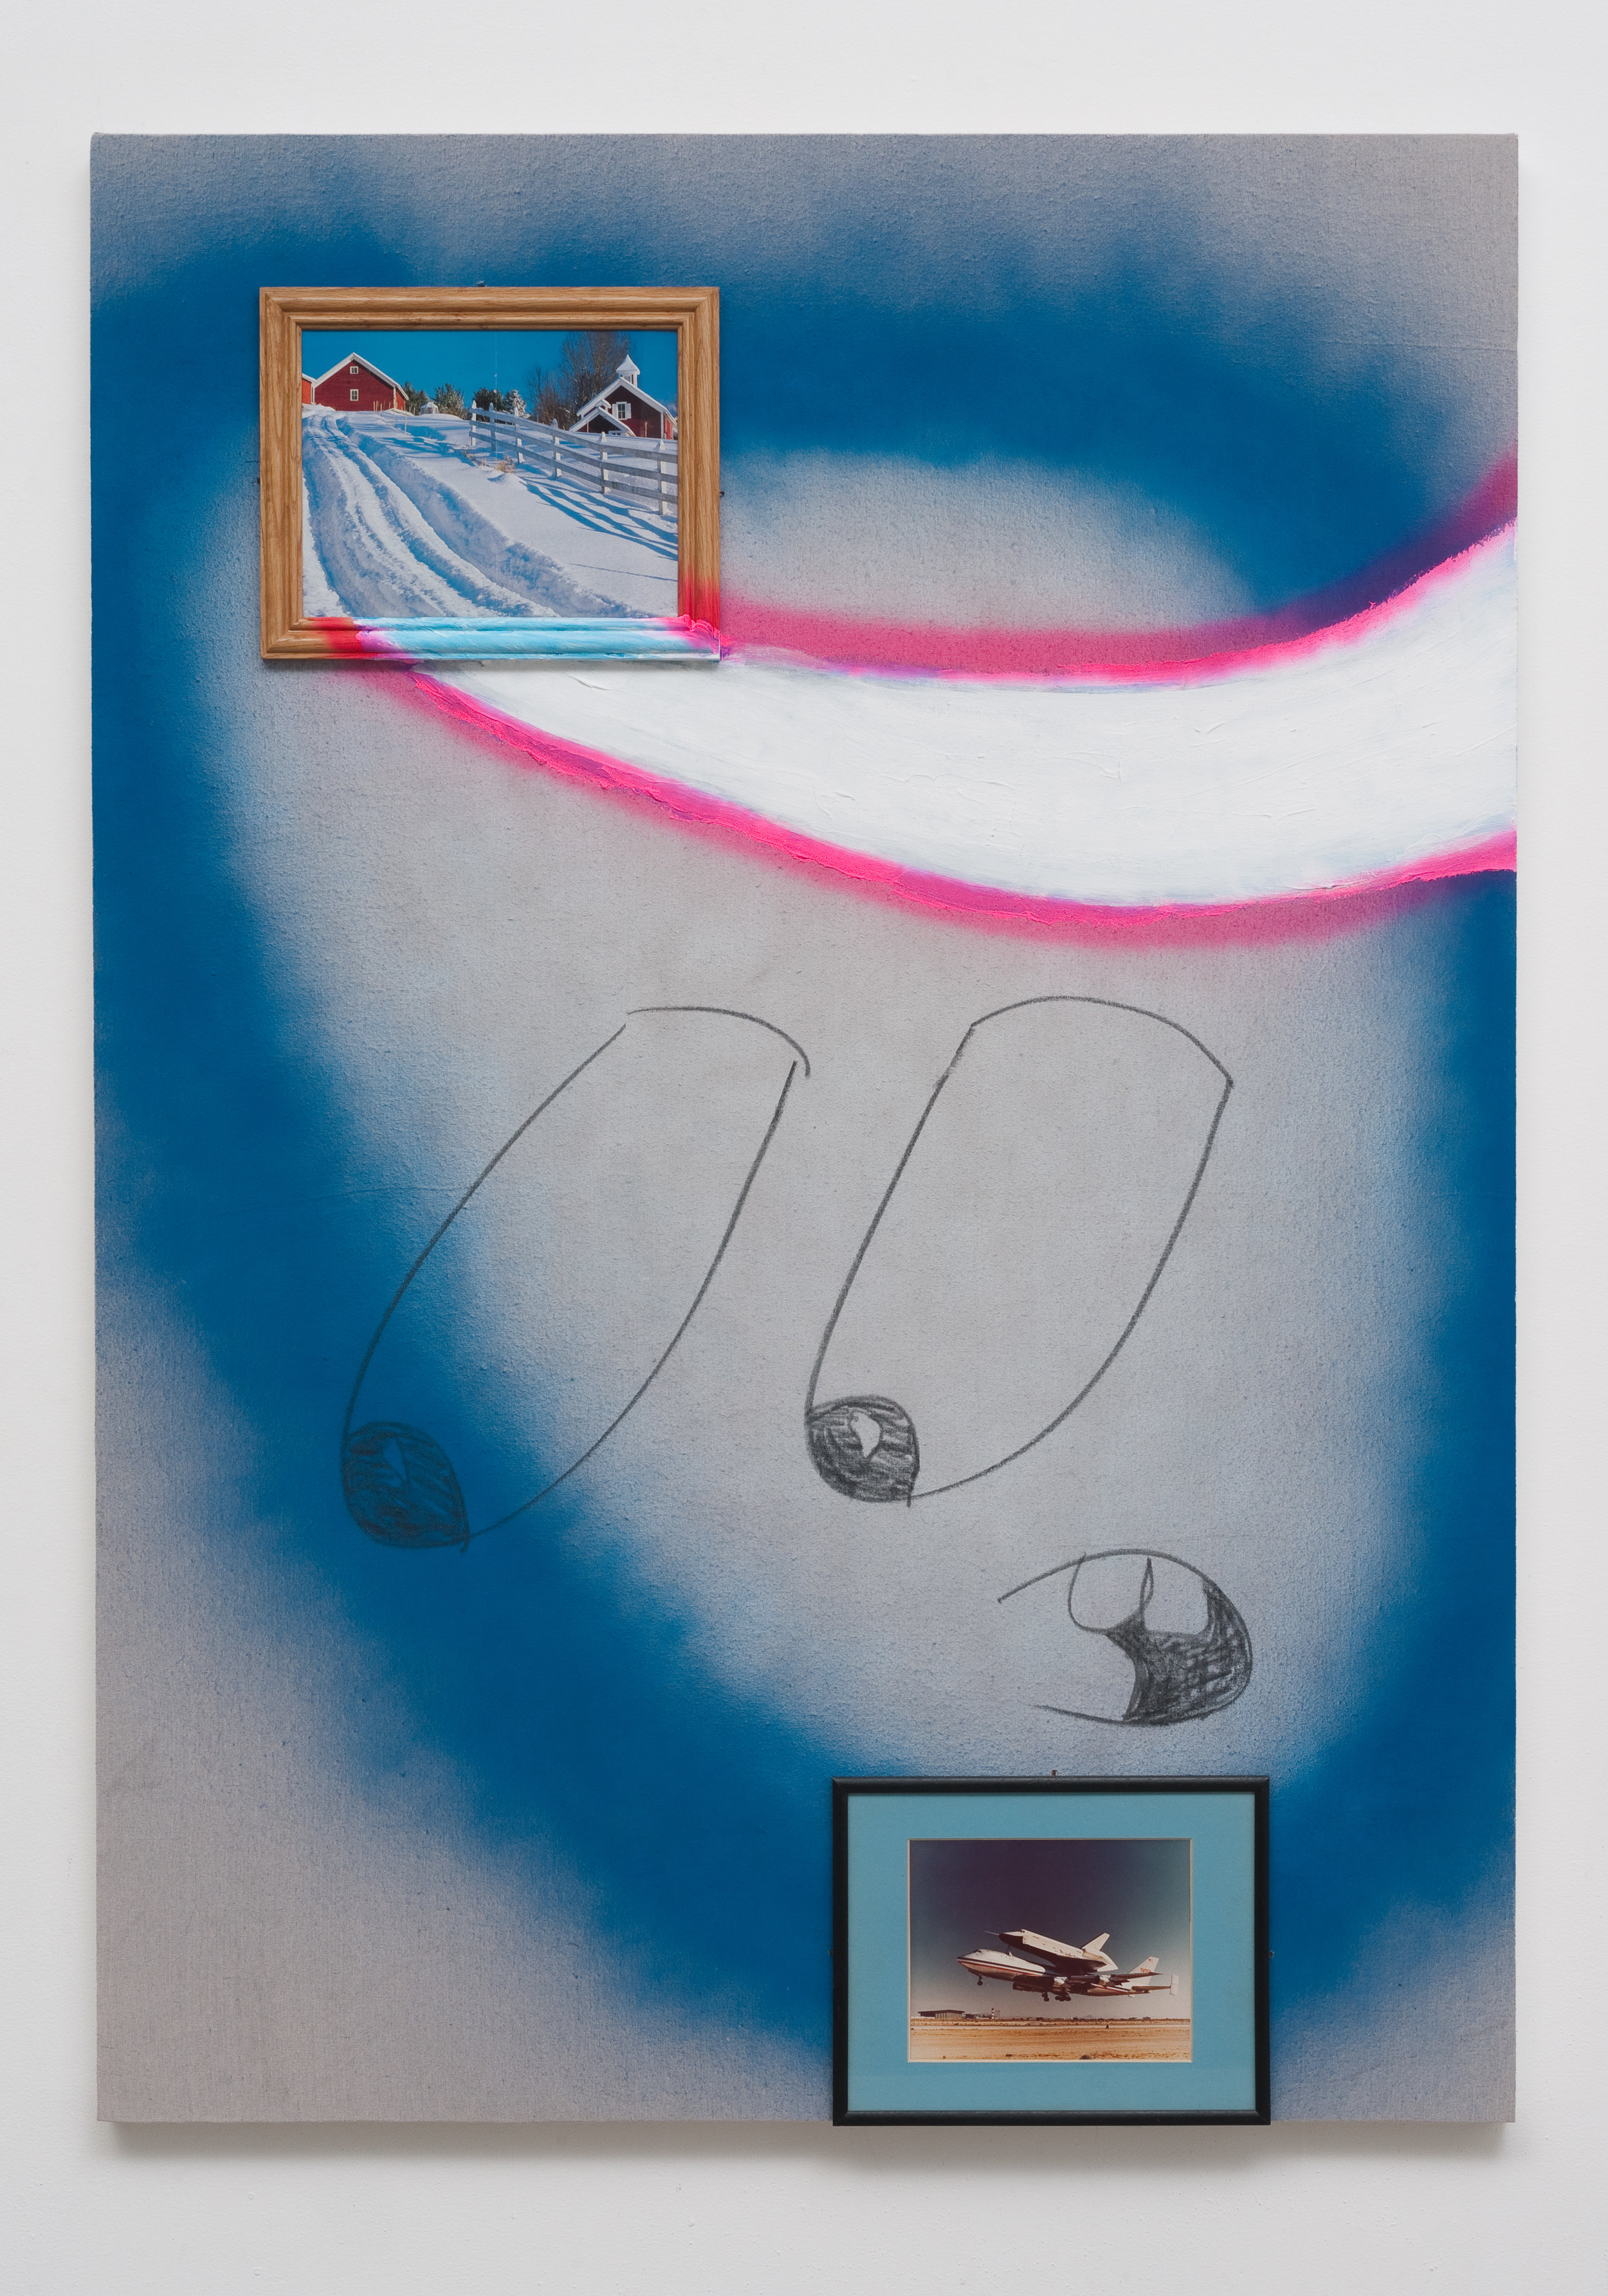 The Long Way Home, 2013 canvas, framed images, acrylic, spray paint, wire, wood 170,2 x 122 cm - 67 x 48 inches